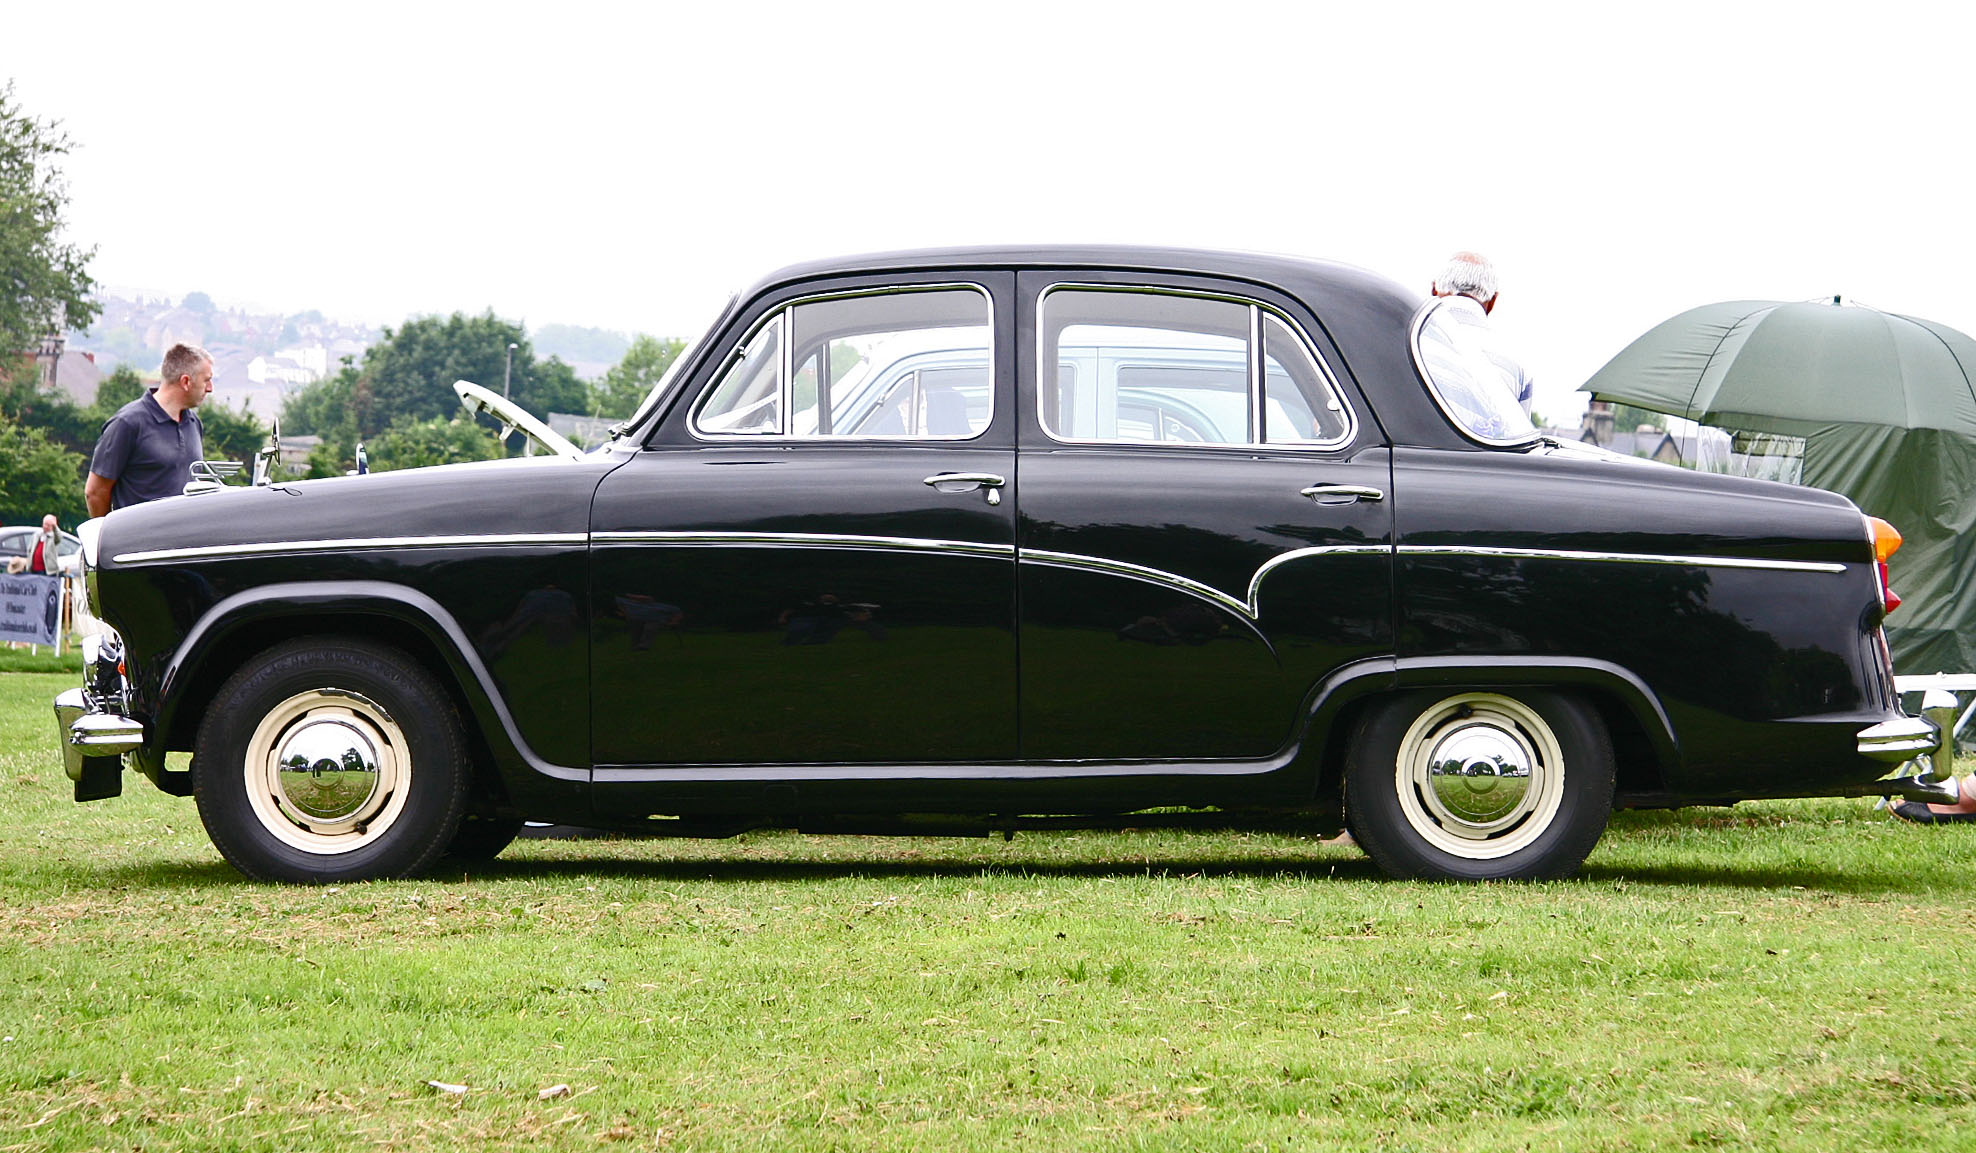 File:Austin A55 Cambridge side.jpg - Wikimedia Commons